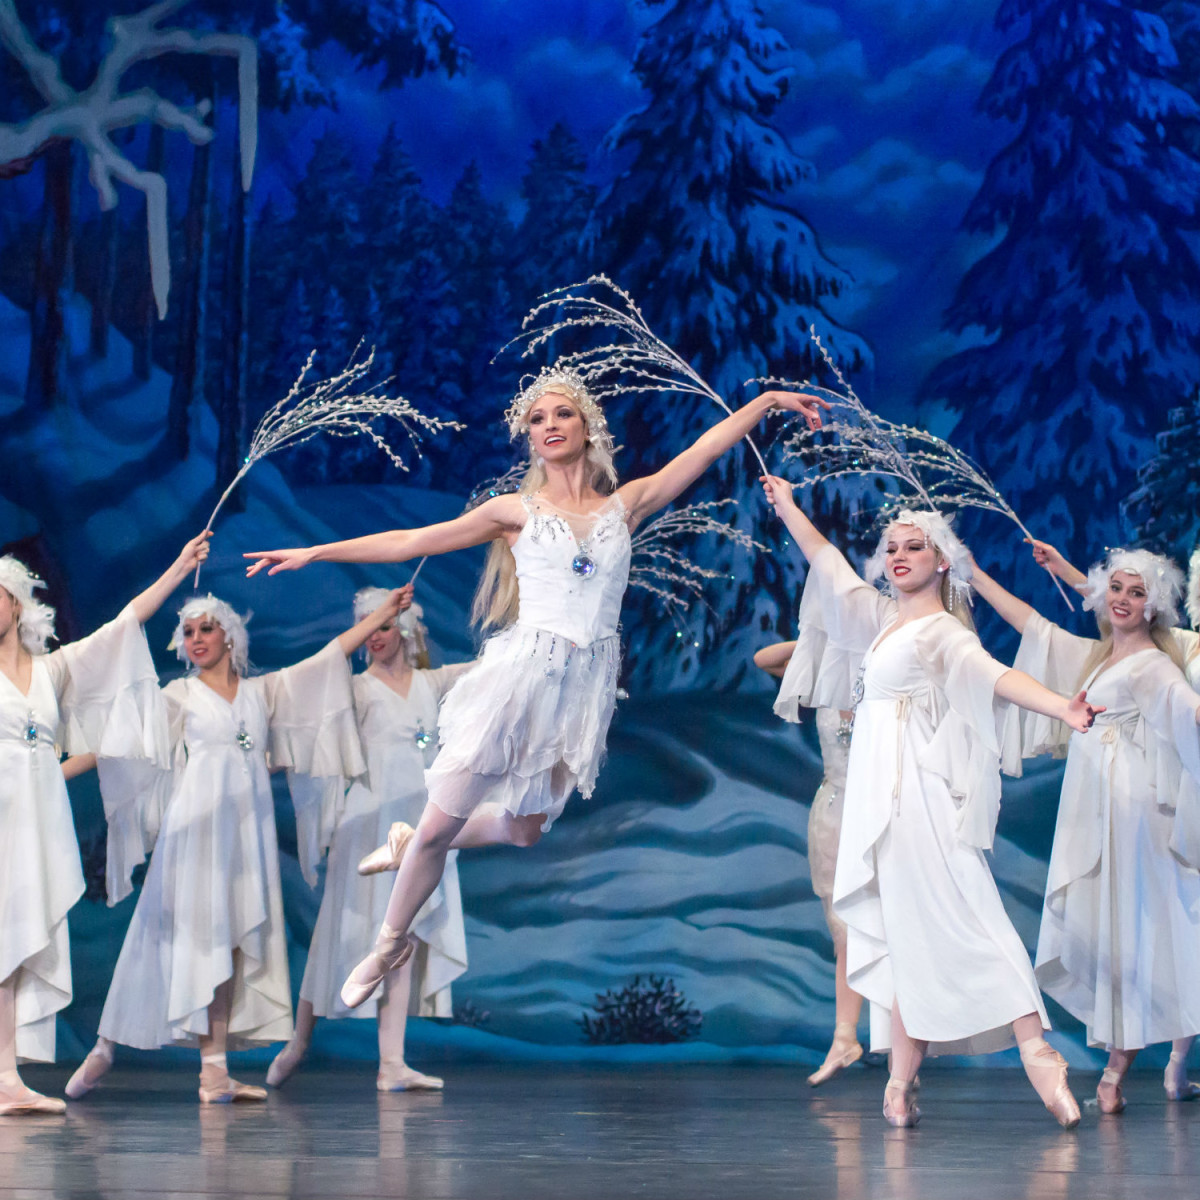 Arts San Antonio presents The Nutcracker